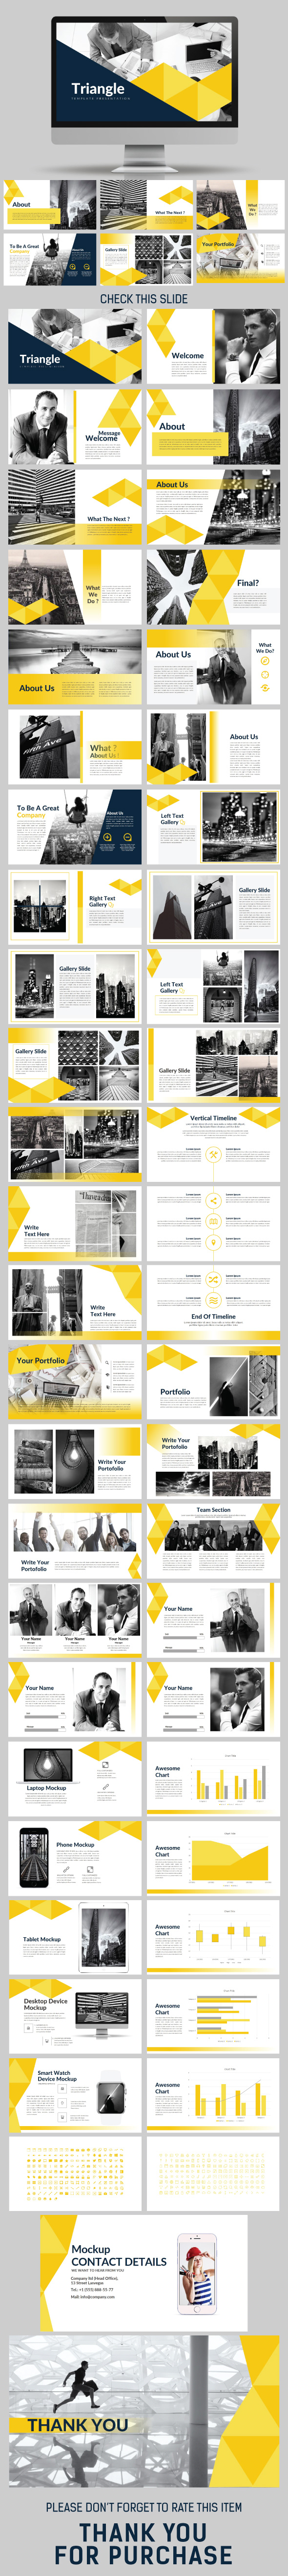 Triangle Keynote Templates - Business Keynote Templates